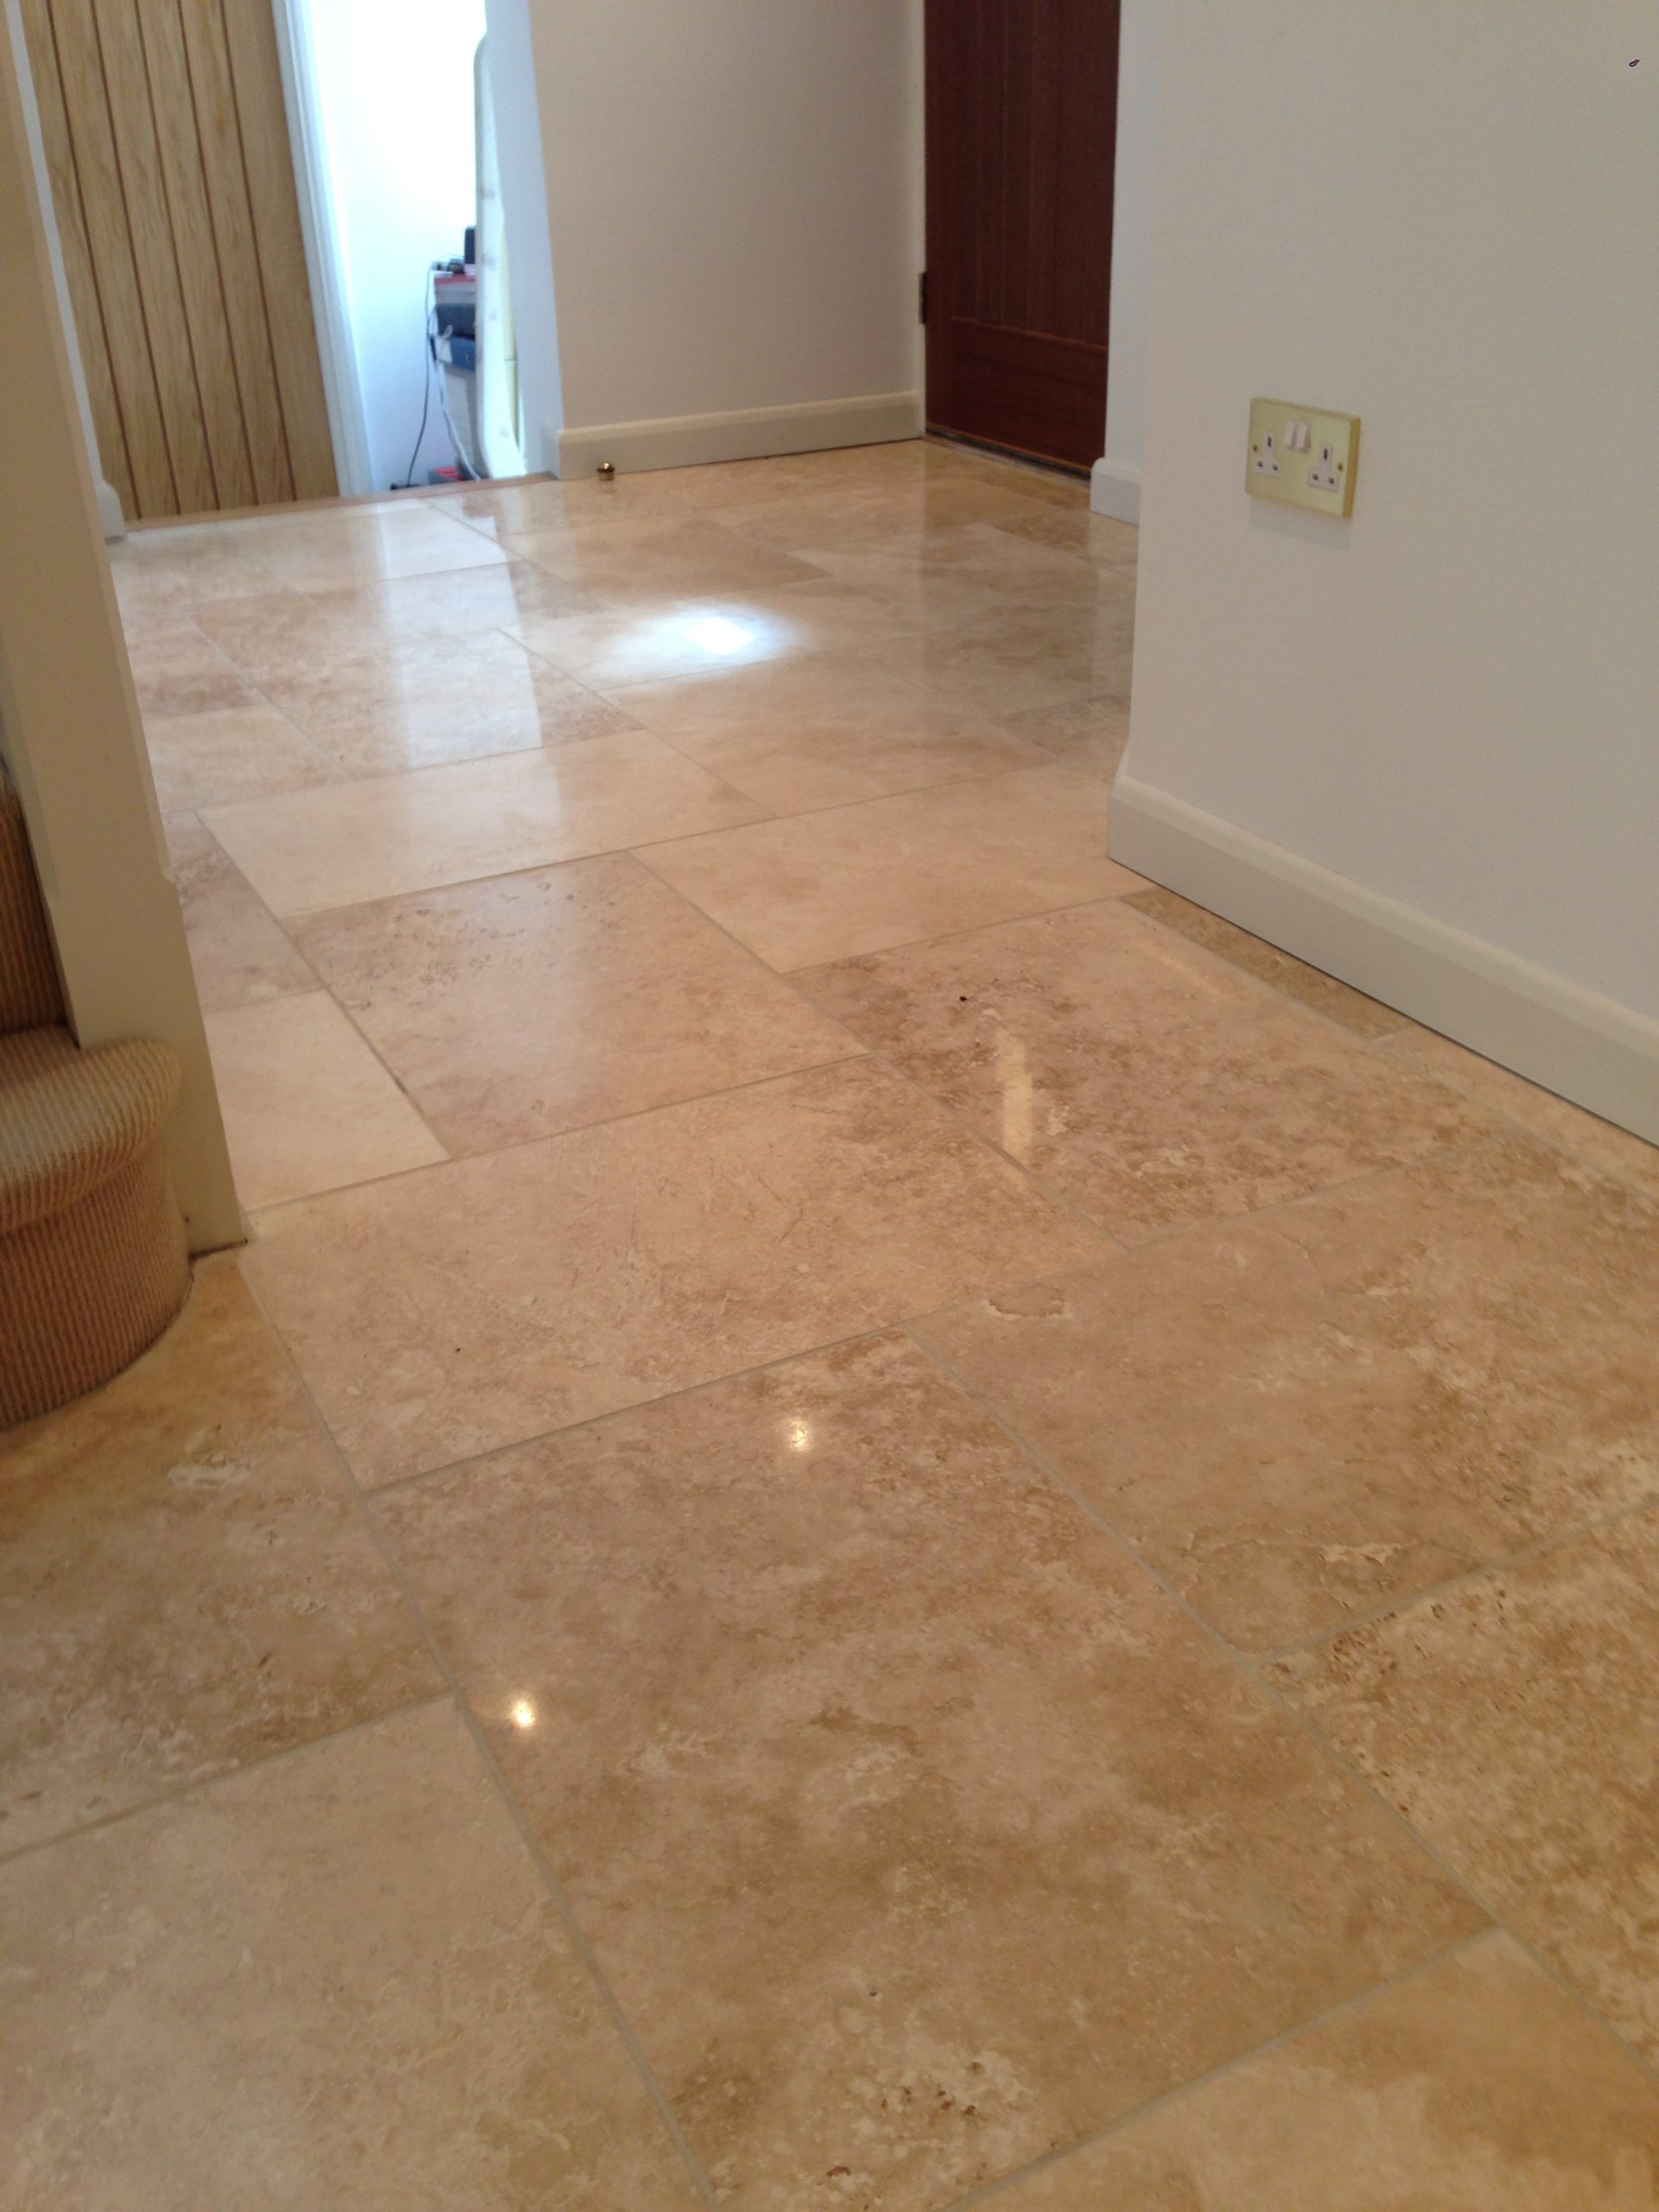 Travertine kitchen floor tiles after cleaning polishing2